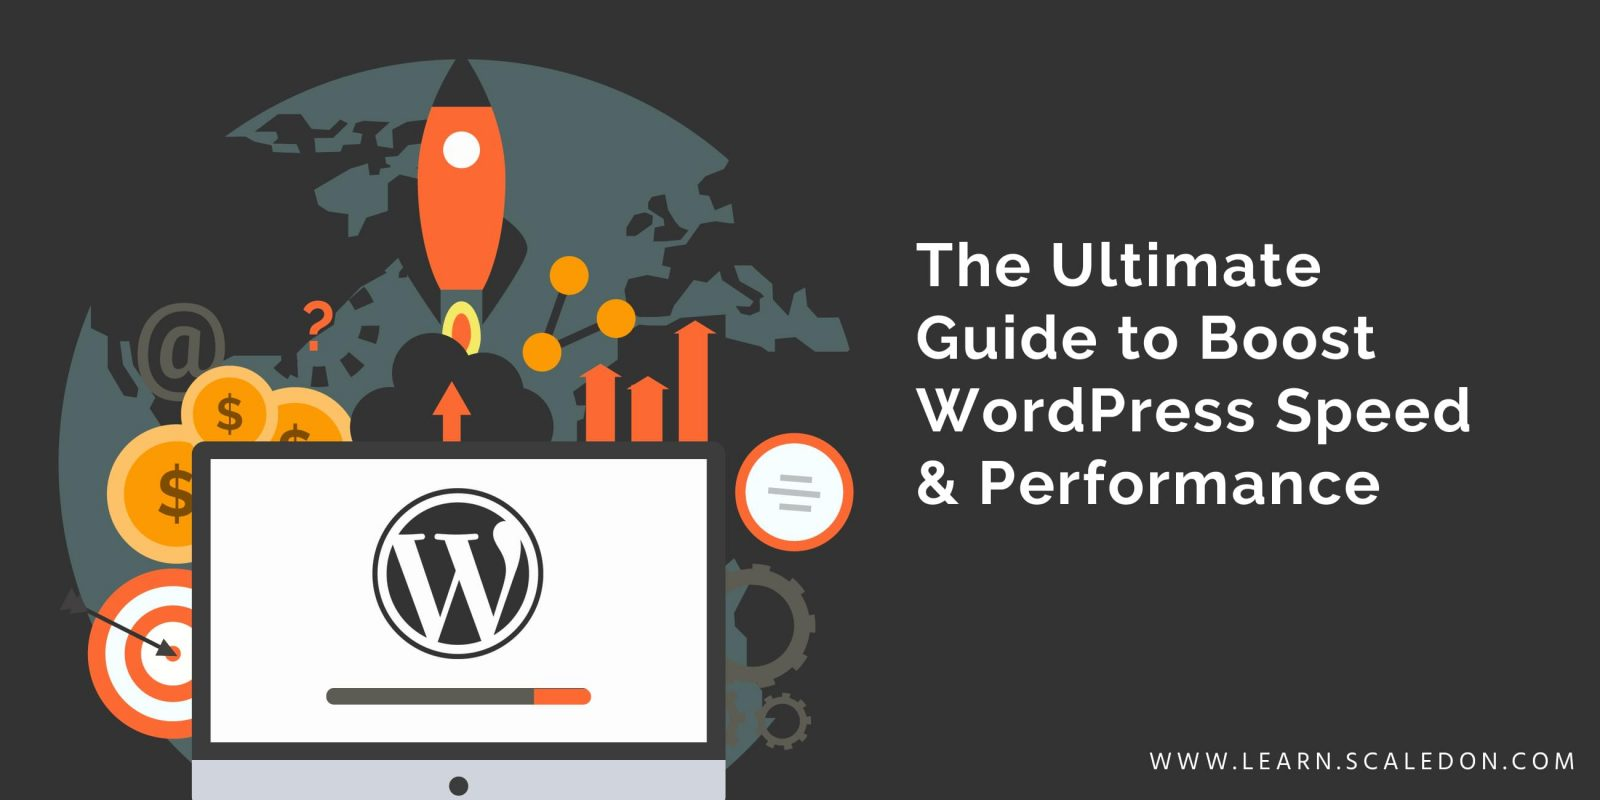 The Ultimate Guide to Boost WordPress Speed & Performance